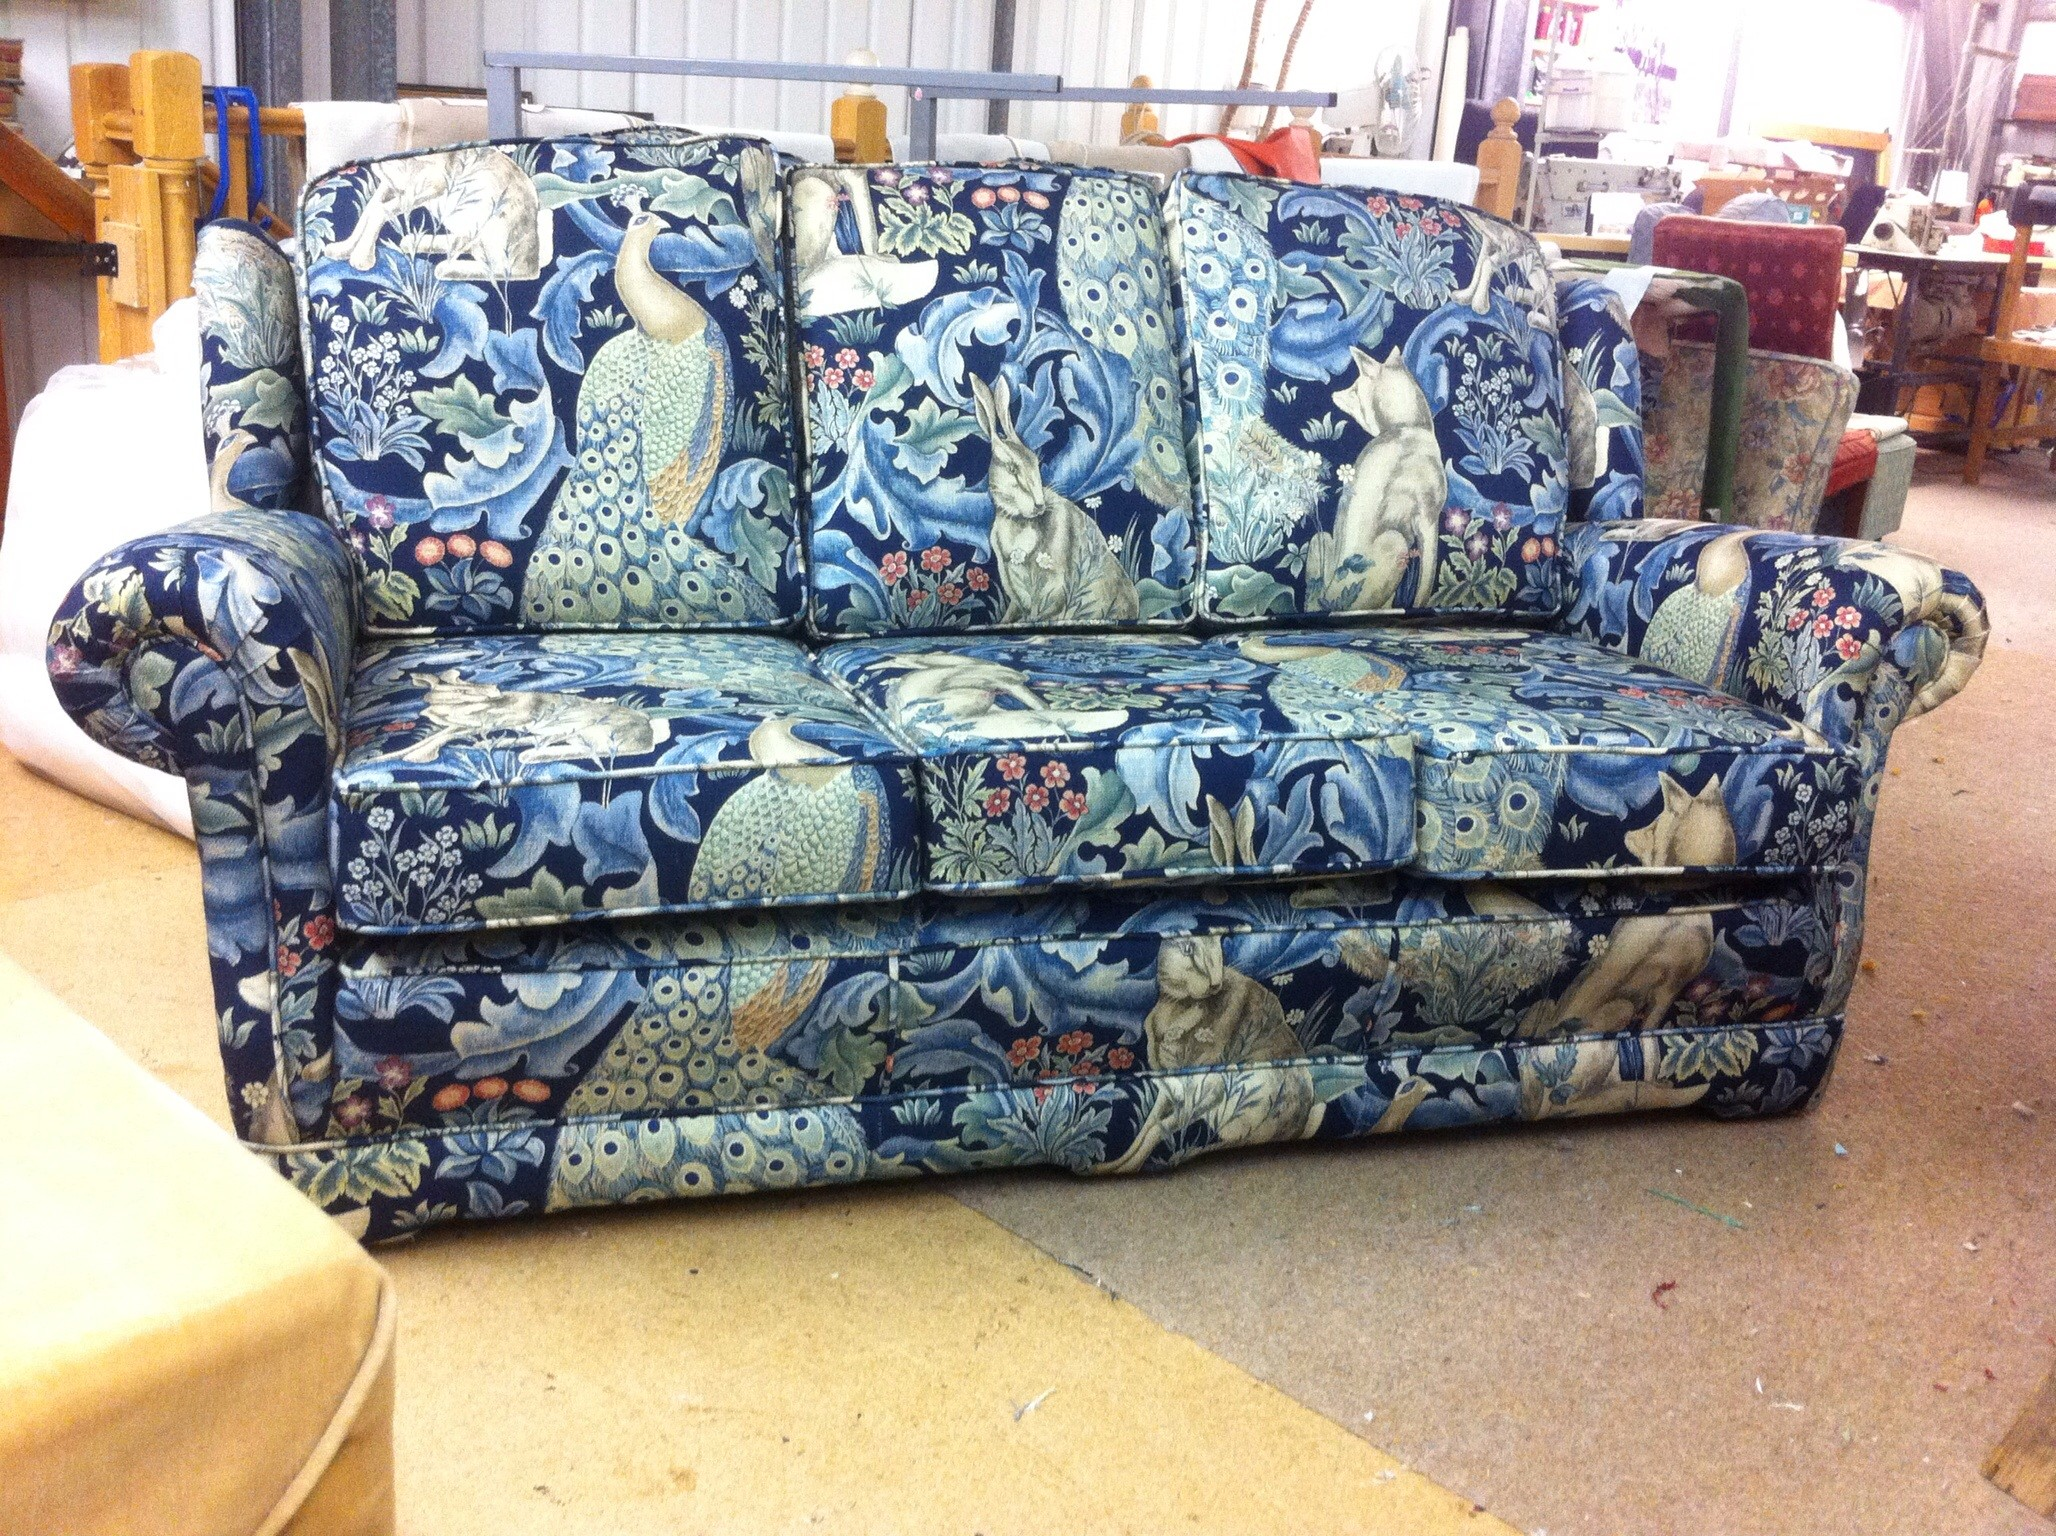 William Morris fabric by Ralvern Master Upholsterers in Cannock Staffordshire Ws11 7xn 01543 505539